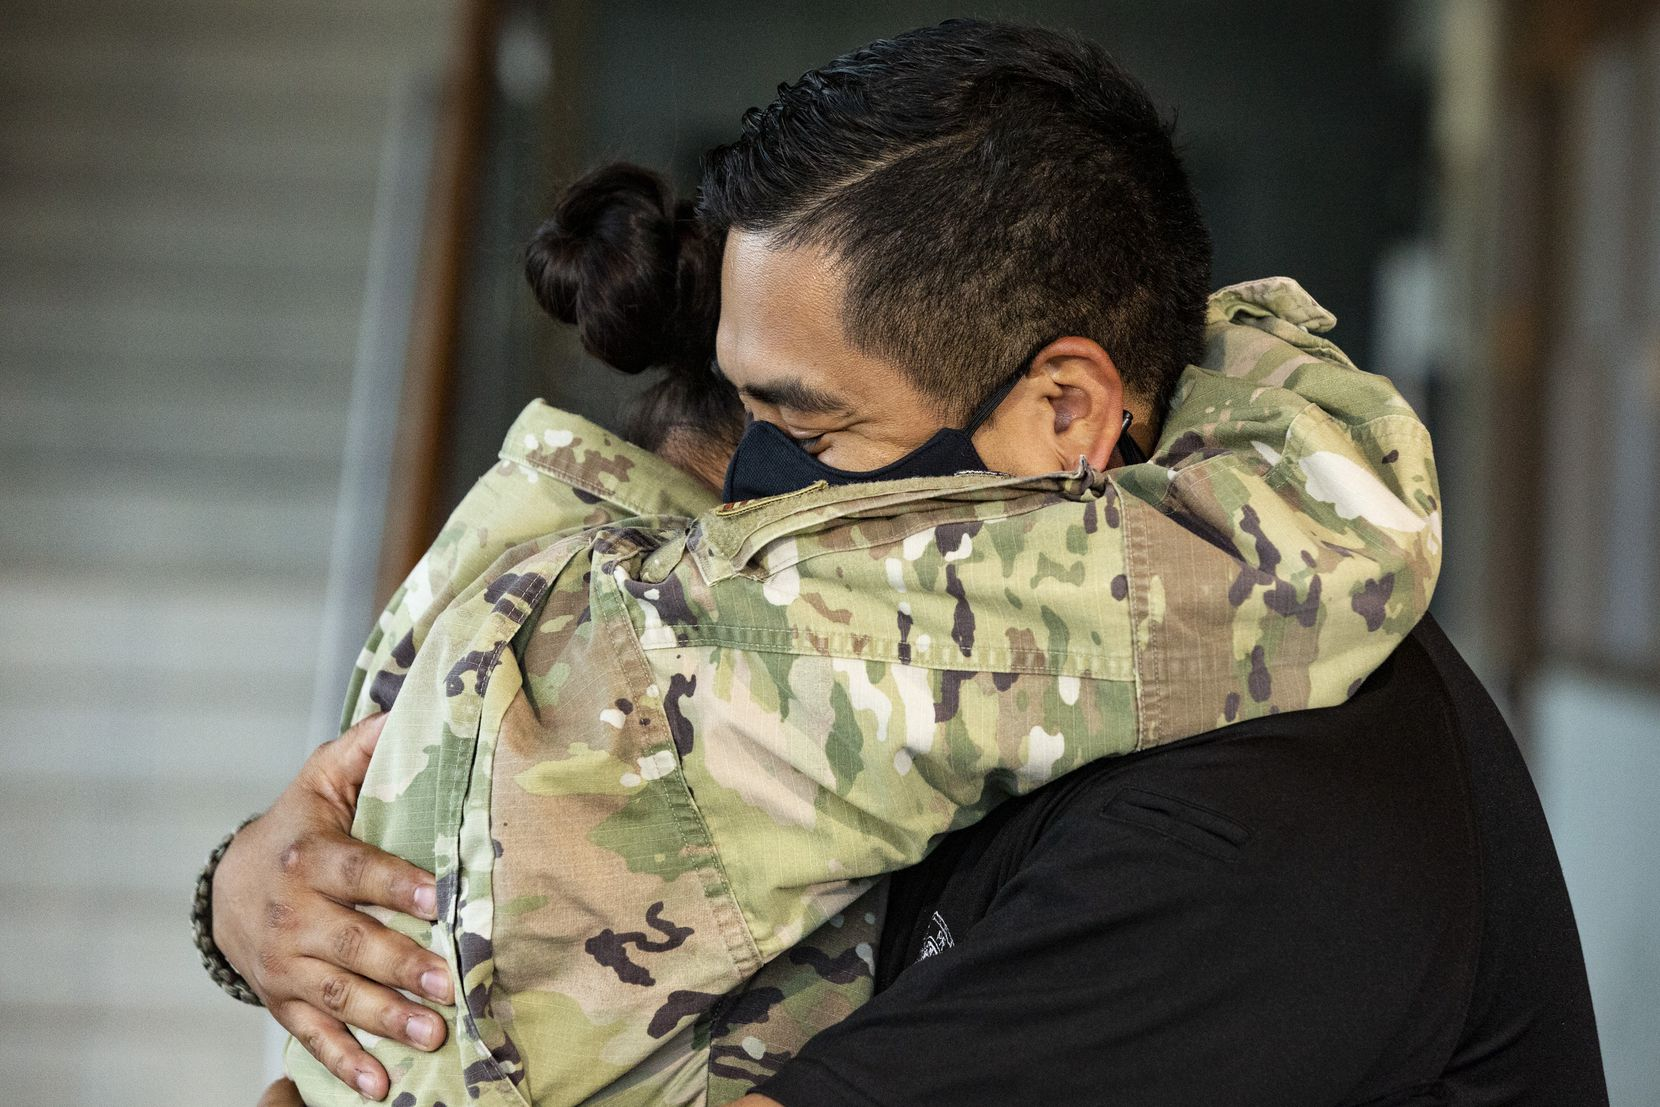 What else but a long hug upon the realization that your wife is safely home? Grand Prairie police Officer Edgar Molina got to do just that when his wife, Air Force Senior Master Sgt. Viviana Molina, surprised him at police headquarters by arriving home from a six-month deployment in Iraq.